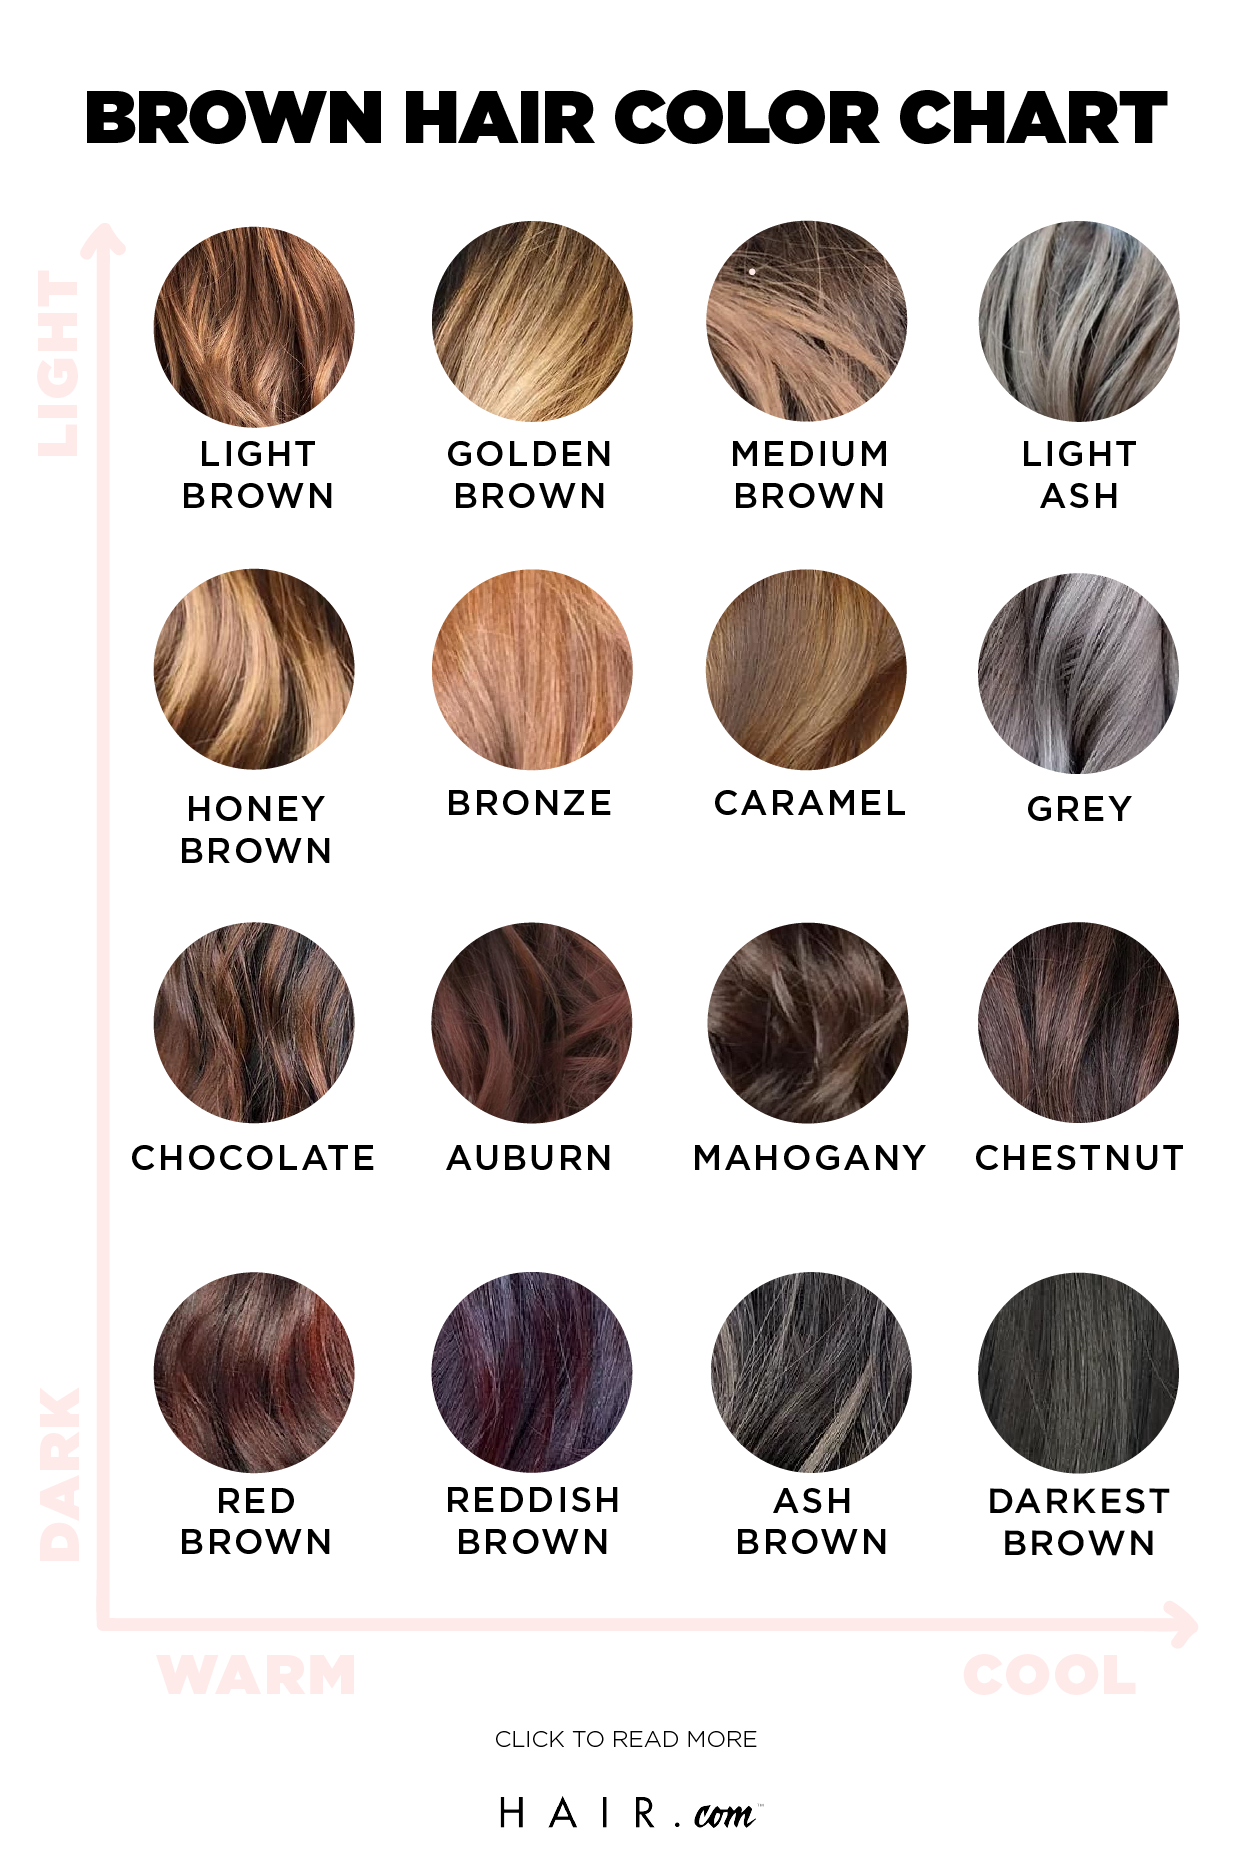 Shades Of Brown The Ultimate Brunette Hair Color Chart In 2020 Hair Color Chart Brunette Hair Color Blonde Hair Color Chart